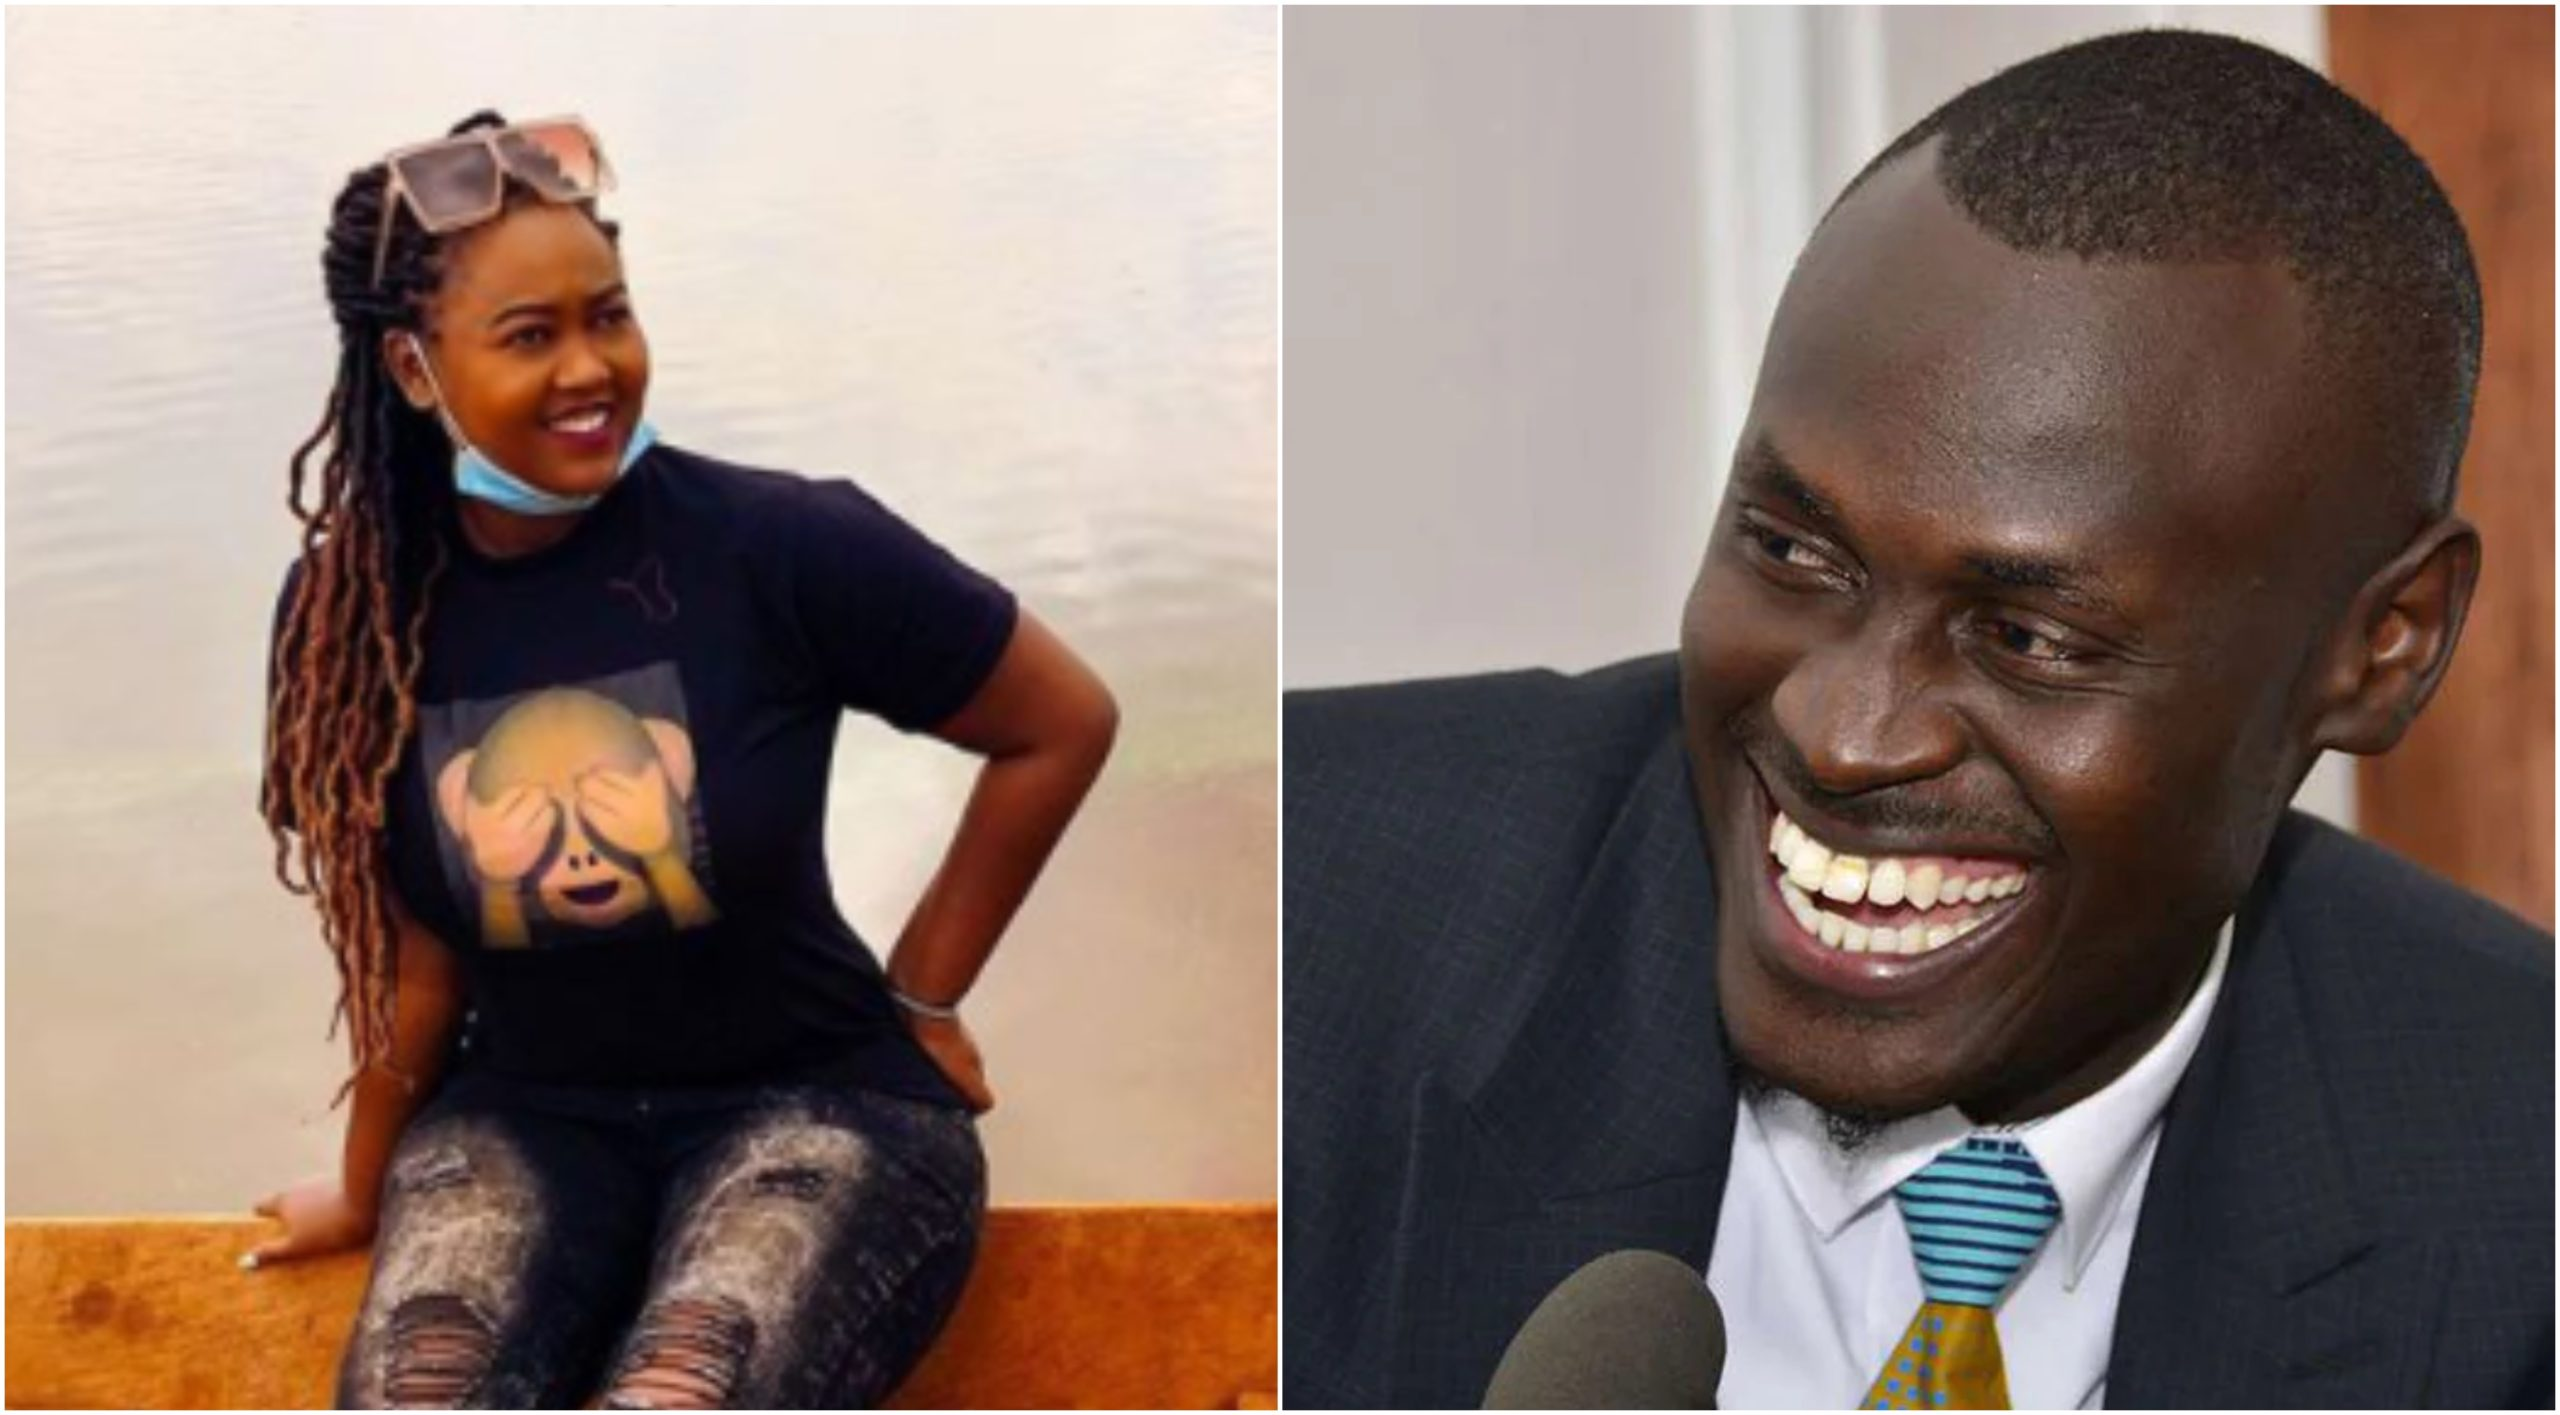 Village fisherman's promise to marry Nana Owiti and sire 12 children together lights up the Internet